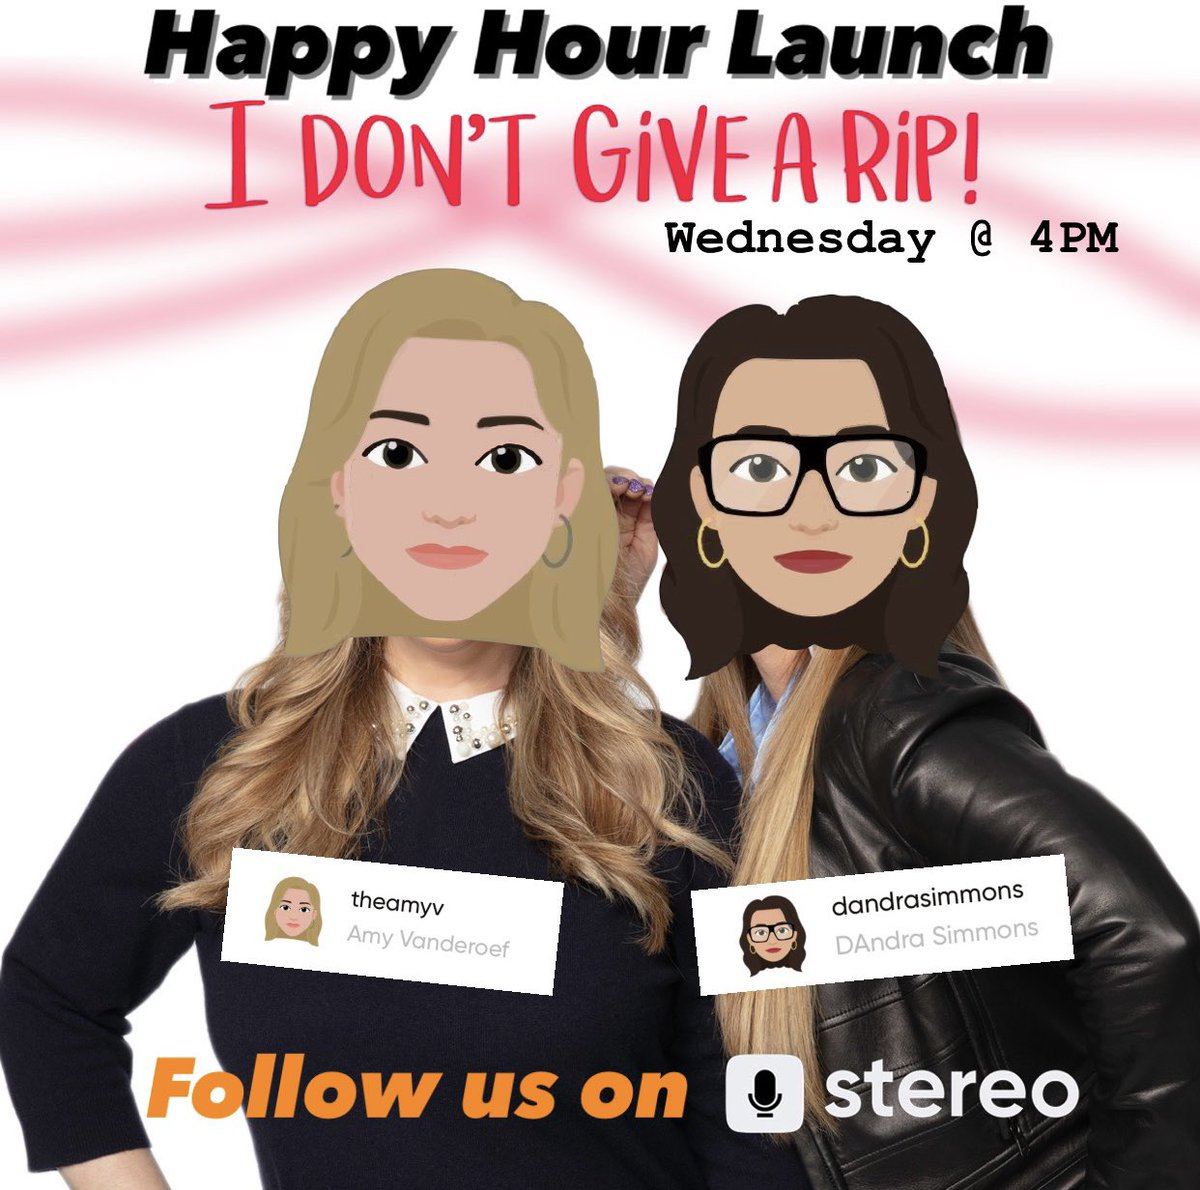 #RHOD fans!! Join @dandrasimmons and me LIVE today at 4pm for the HAPPIEST of happy hours with the #IDontGiveARipPodcast on @app_stereo! 🔉 Hangout with us & ask questions 🤩  🤗